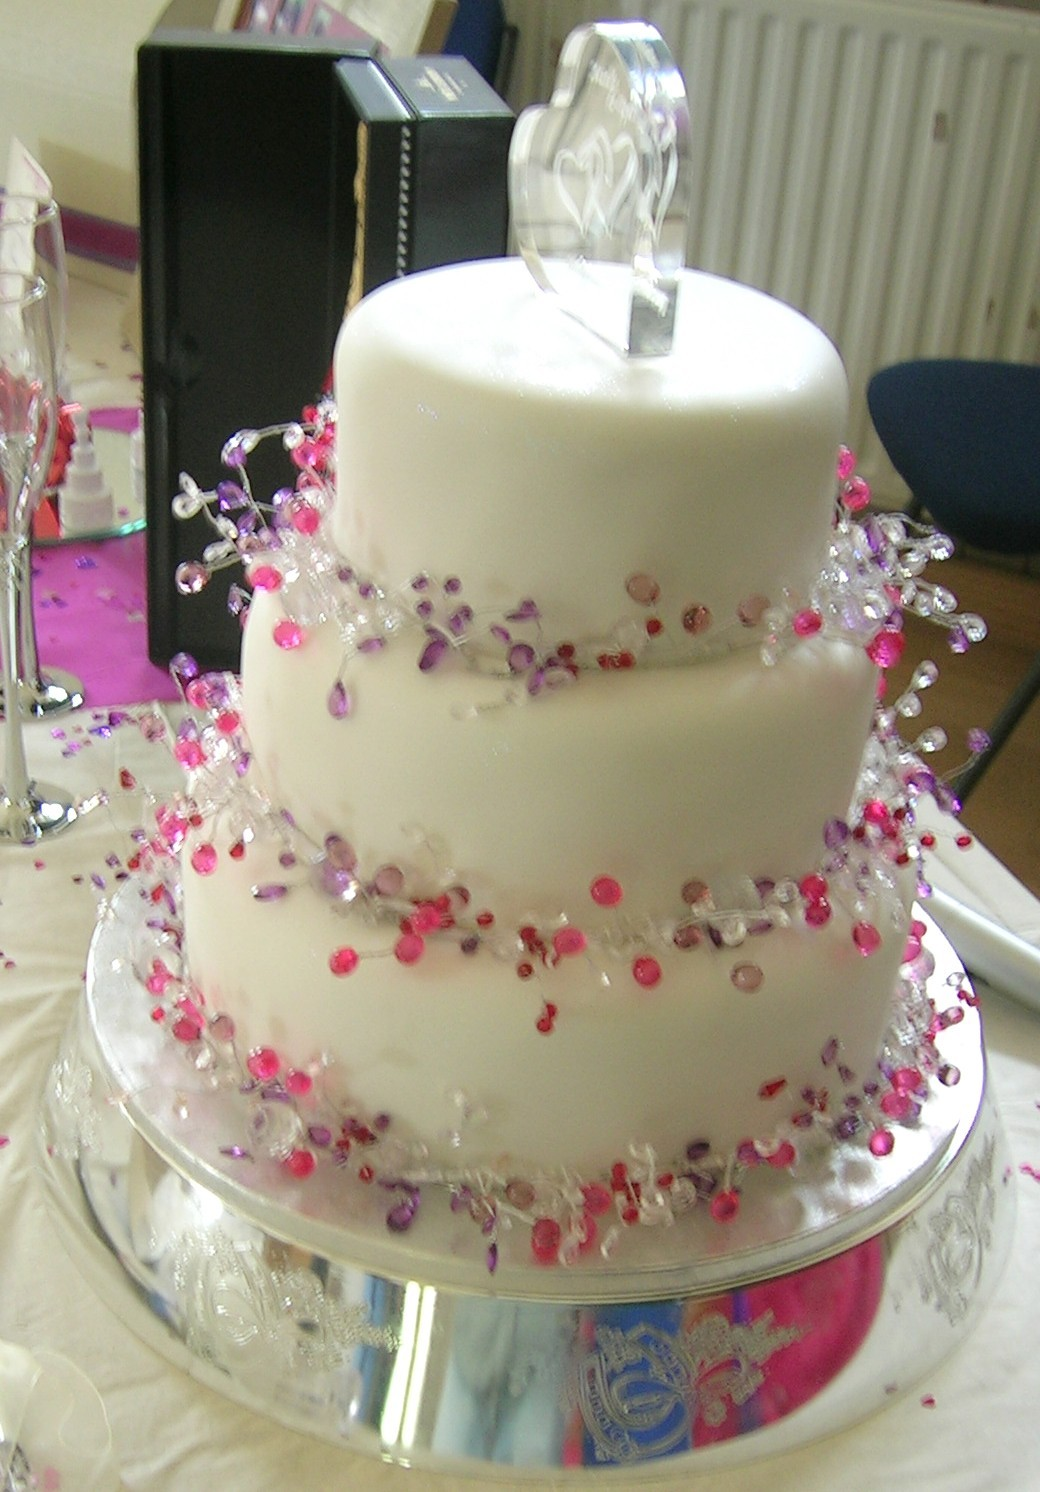 Cake Design Ideas For Wedding : Wedding Pictures Wedding Photos: Wedding Cake Decorating ...